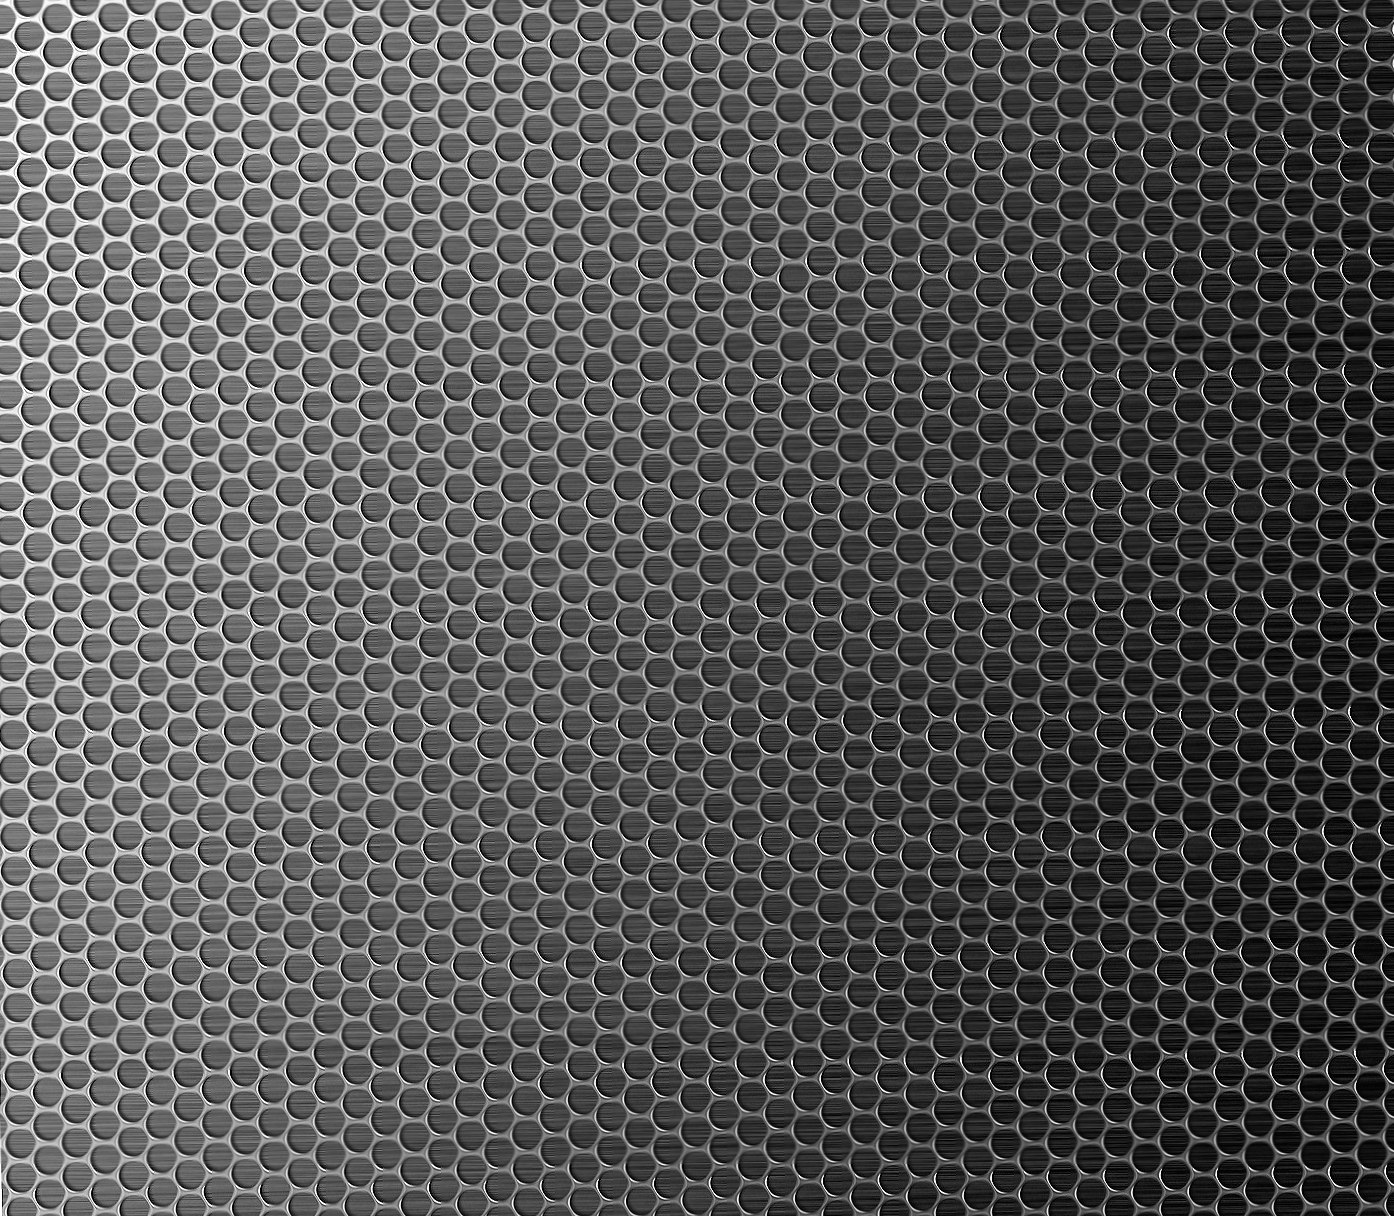 Metal wallpapers HD quality